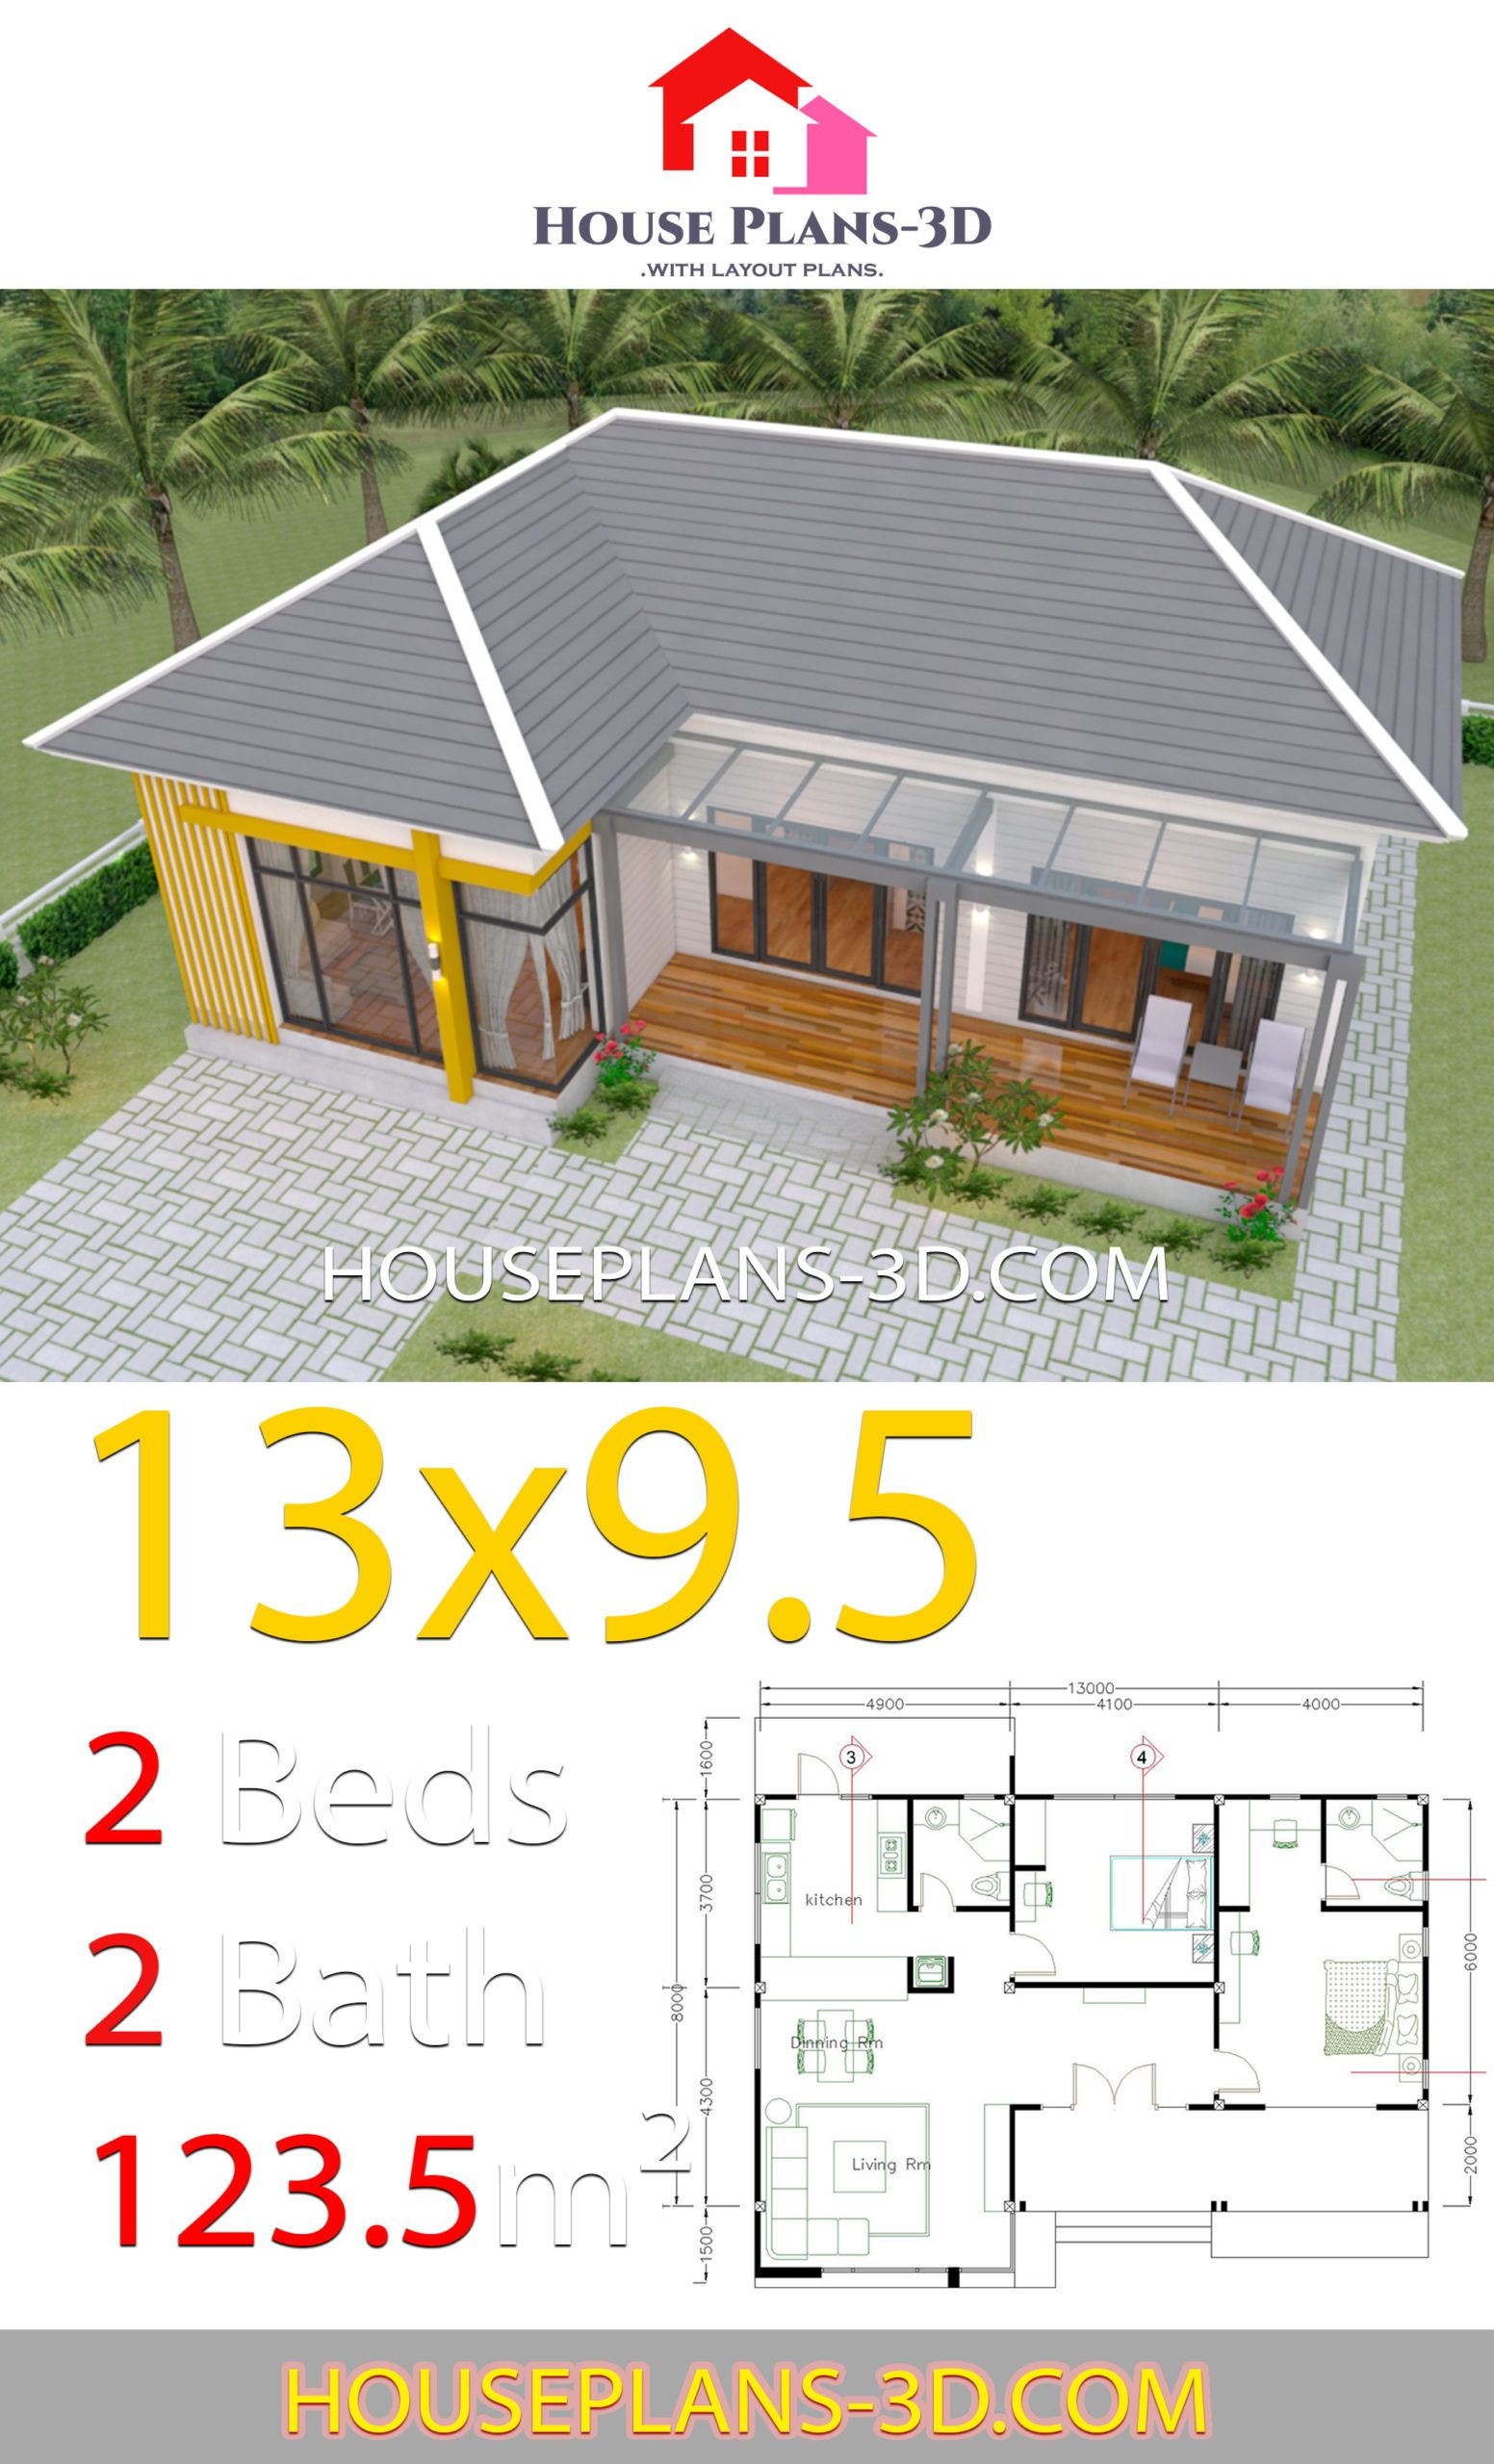 House Plans 13x9 5 With 2 Bedrooms Hip Roof House Plans 3d House Plans House Roof House Layout Plans